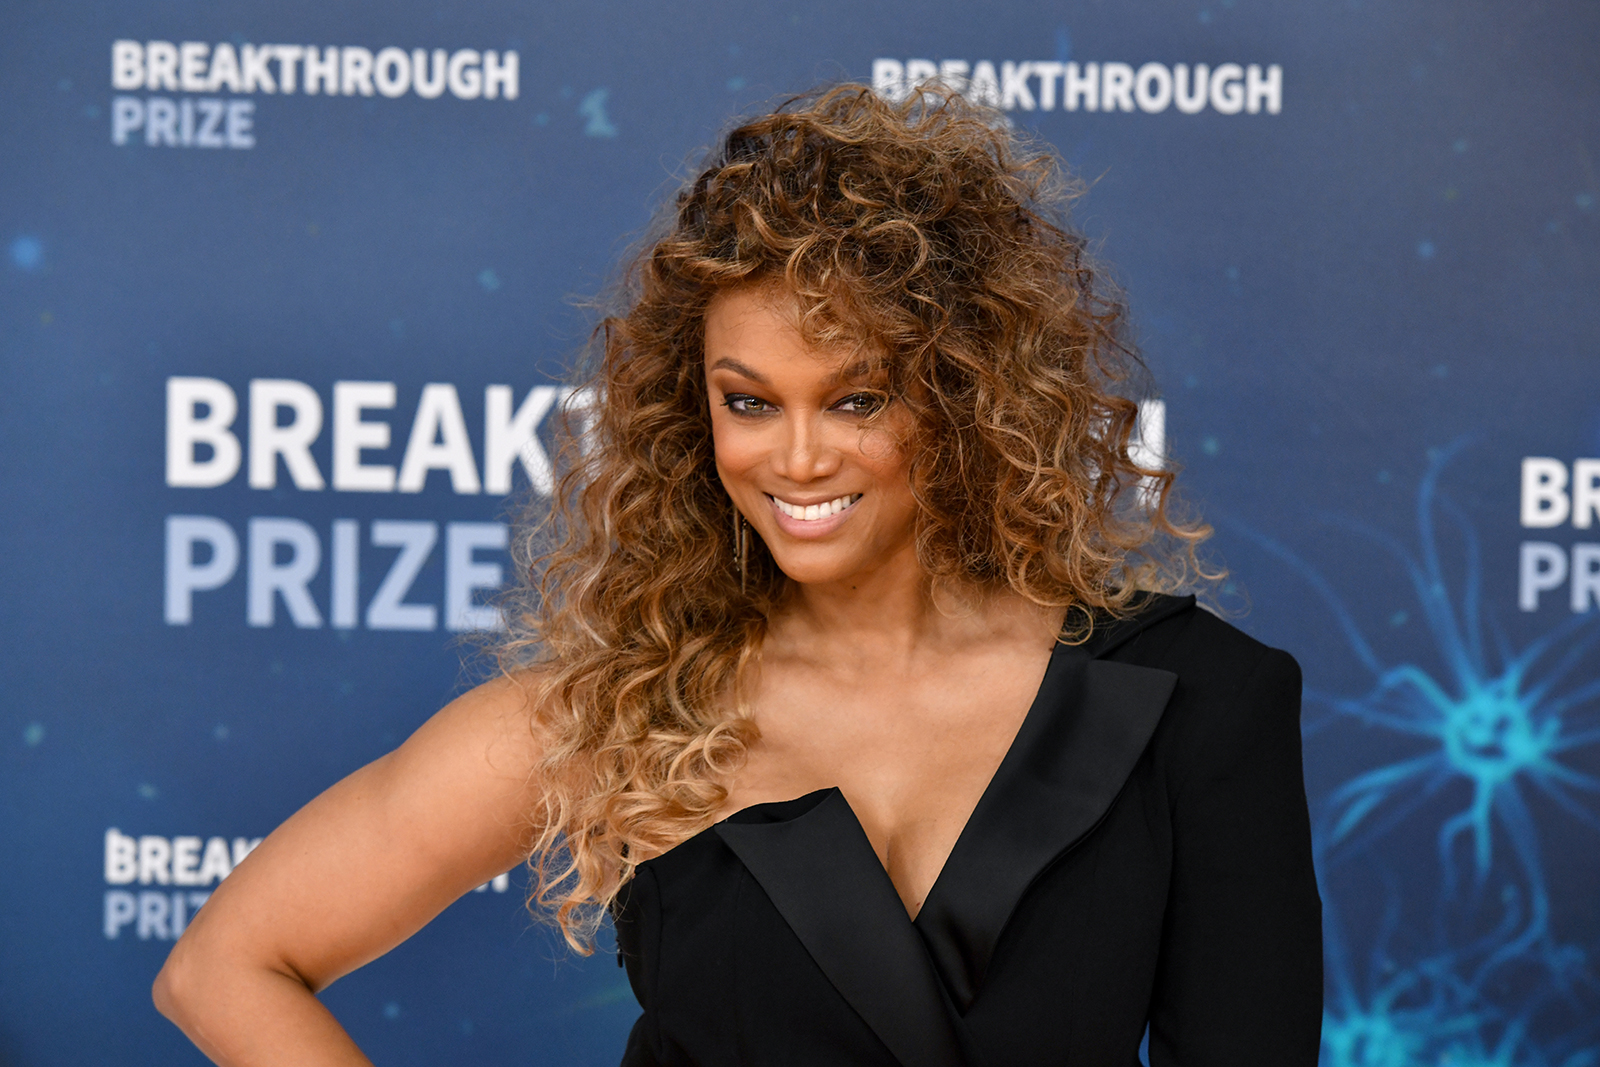 Tyra Banks to join 'Dancing with the Stars' as a host and executive producer